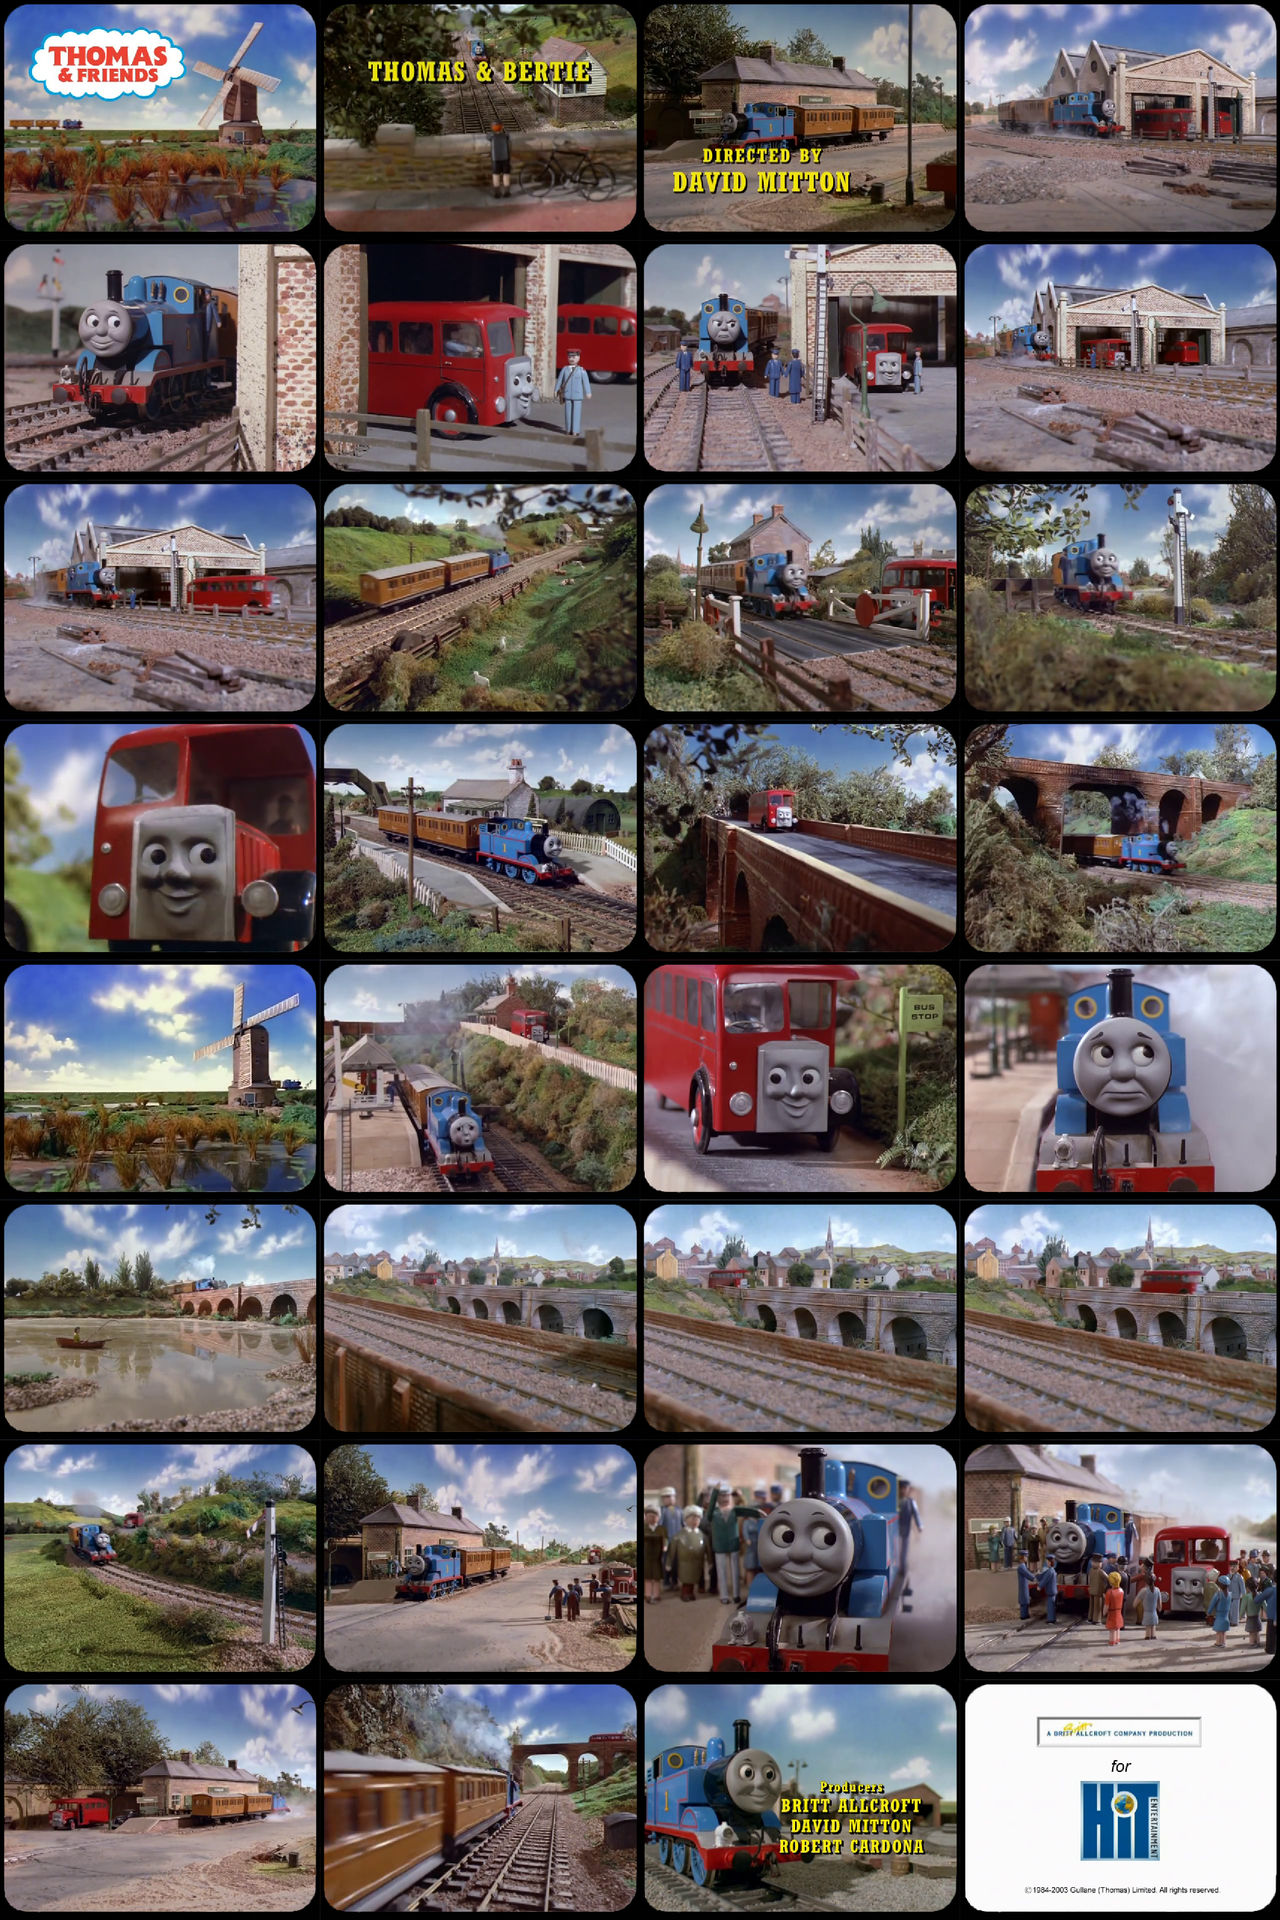 Thomas and Friends Episode 14 Tele-Snaps